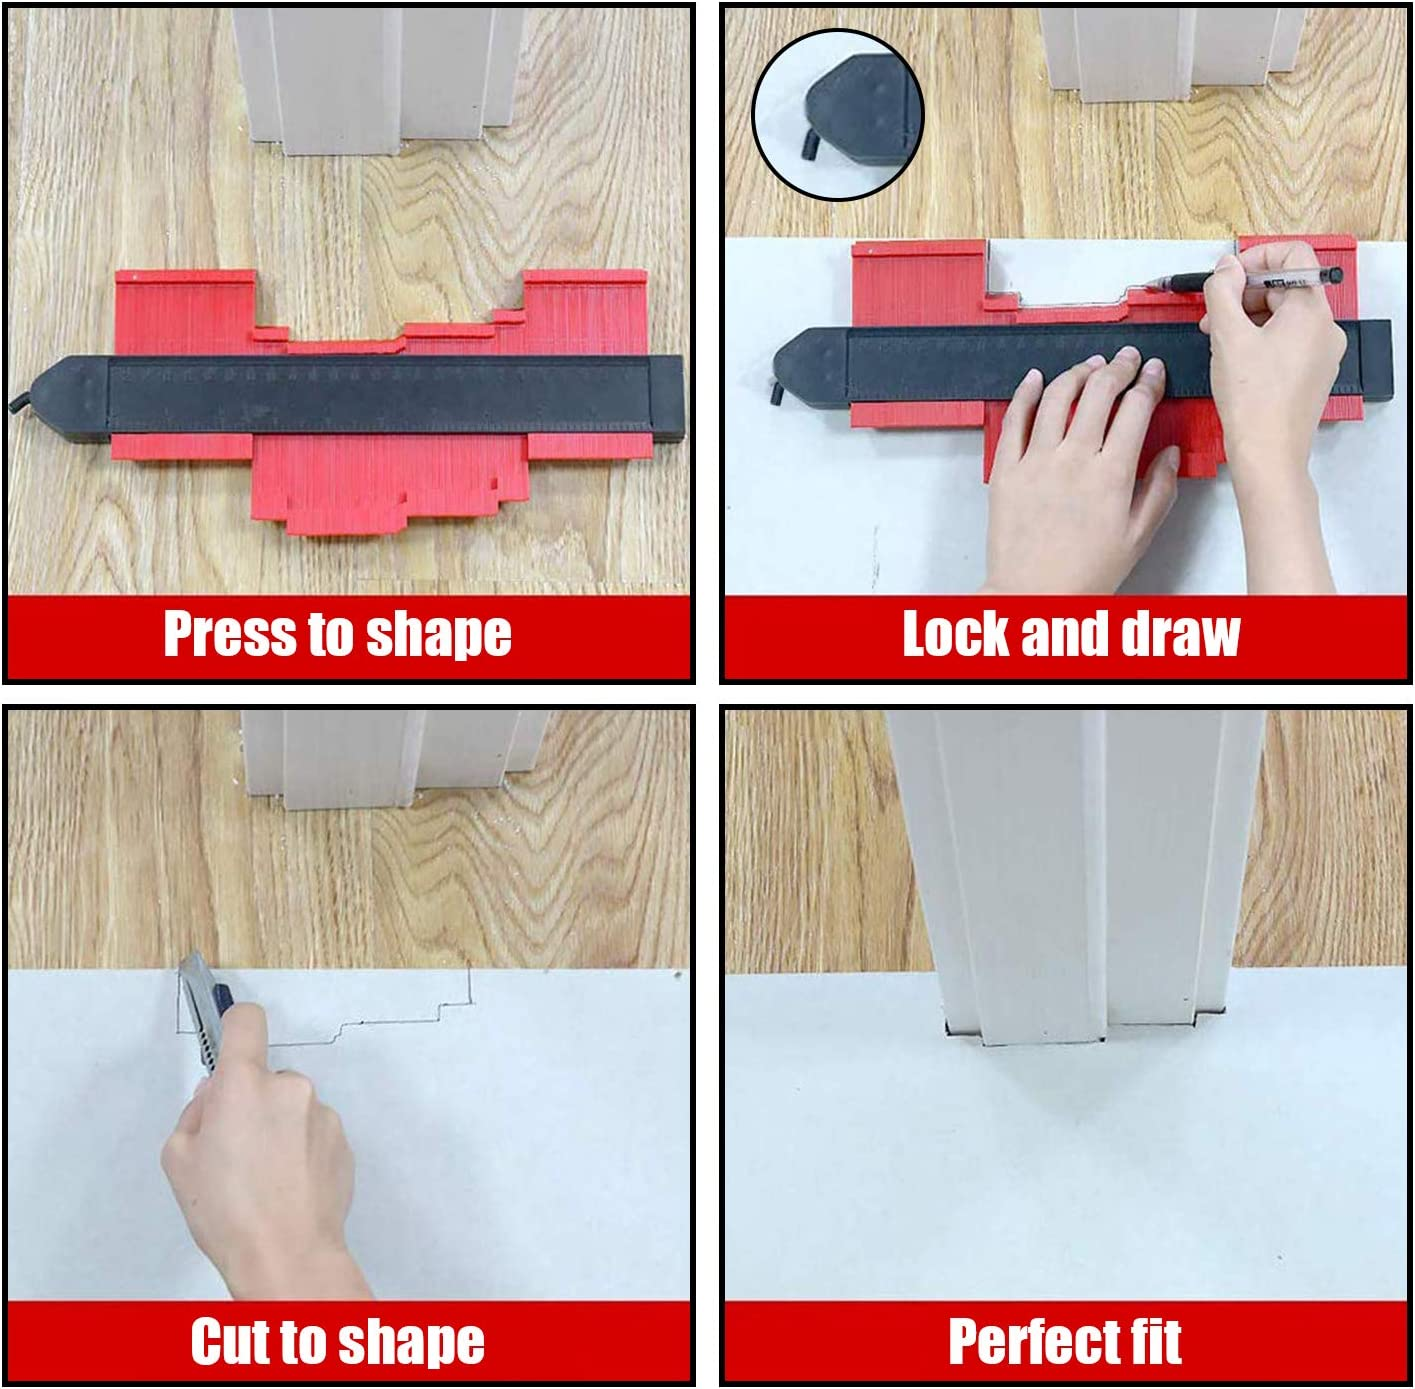 Template Tool with Precisely Copies Irregular and Awkward Shapes-Precise Measurement Tiling Laminate Wood Marking DIY Tool 5 Inch 10 Inch Aaaspark 2 Pack Contour Gauge Shape Duplicator with Lock RED